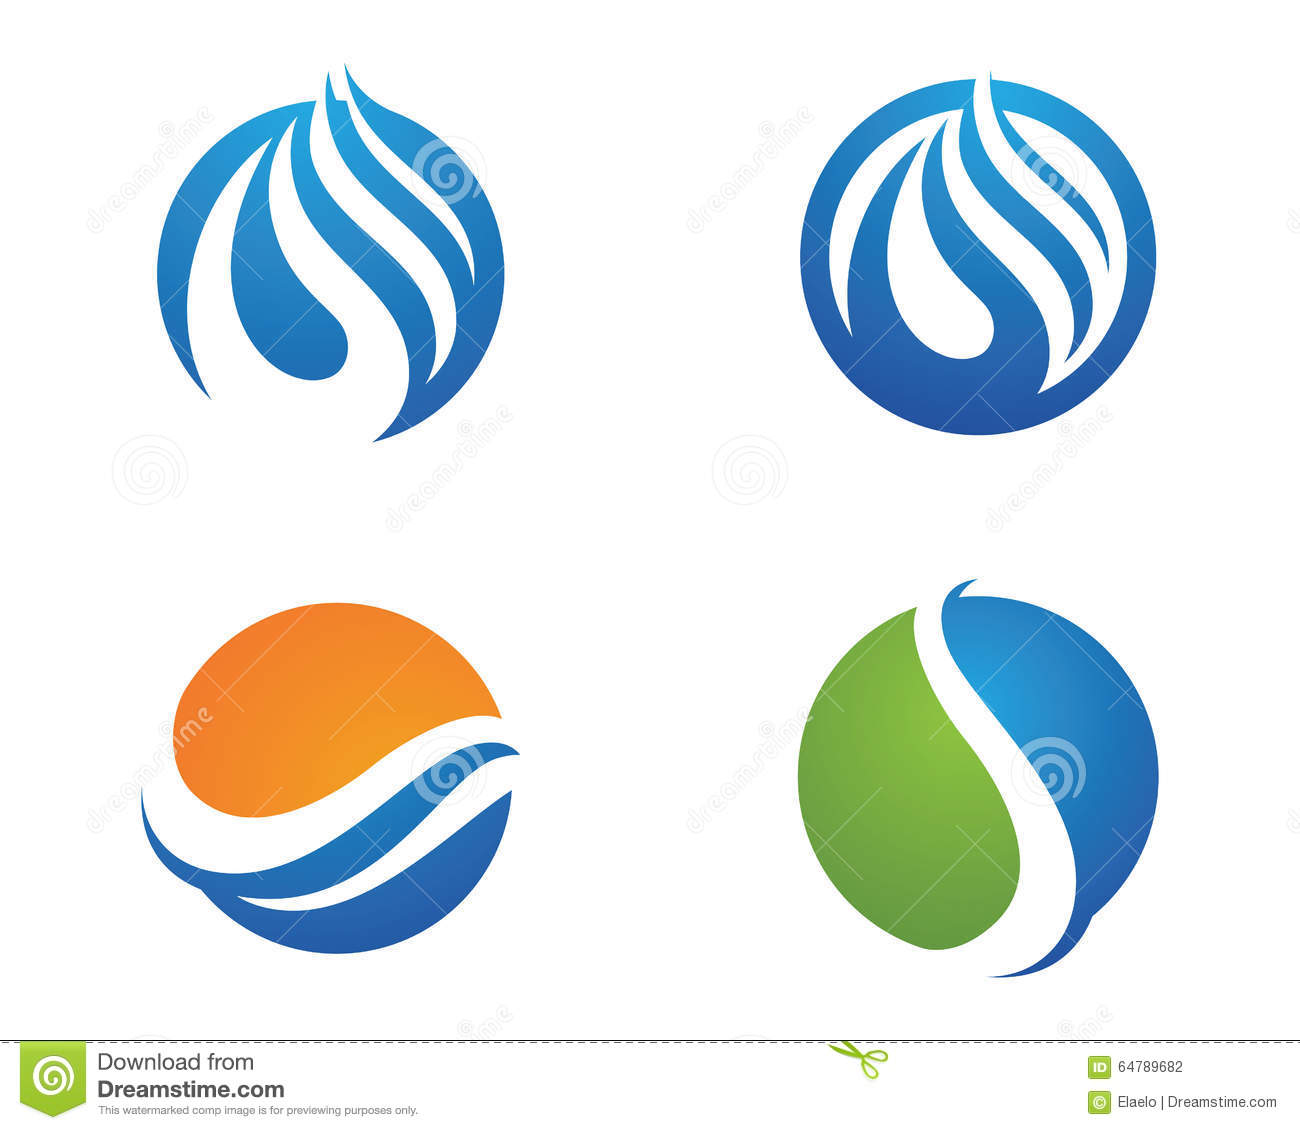 Water Droplet Logo Template Stock Vector - Image: 64789682